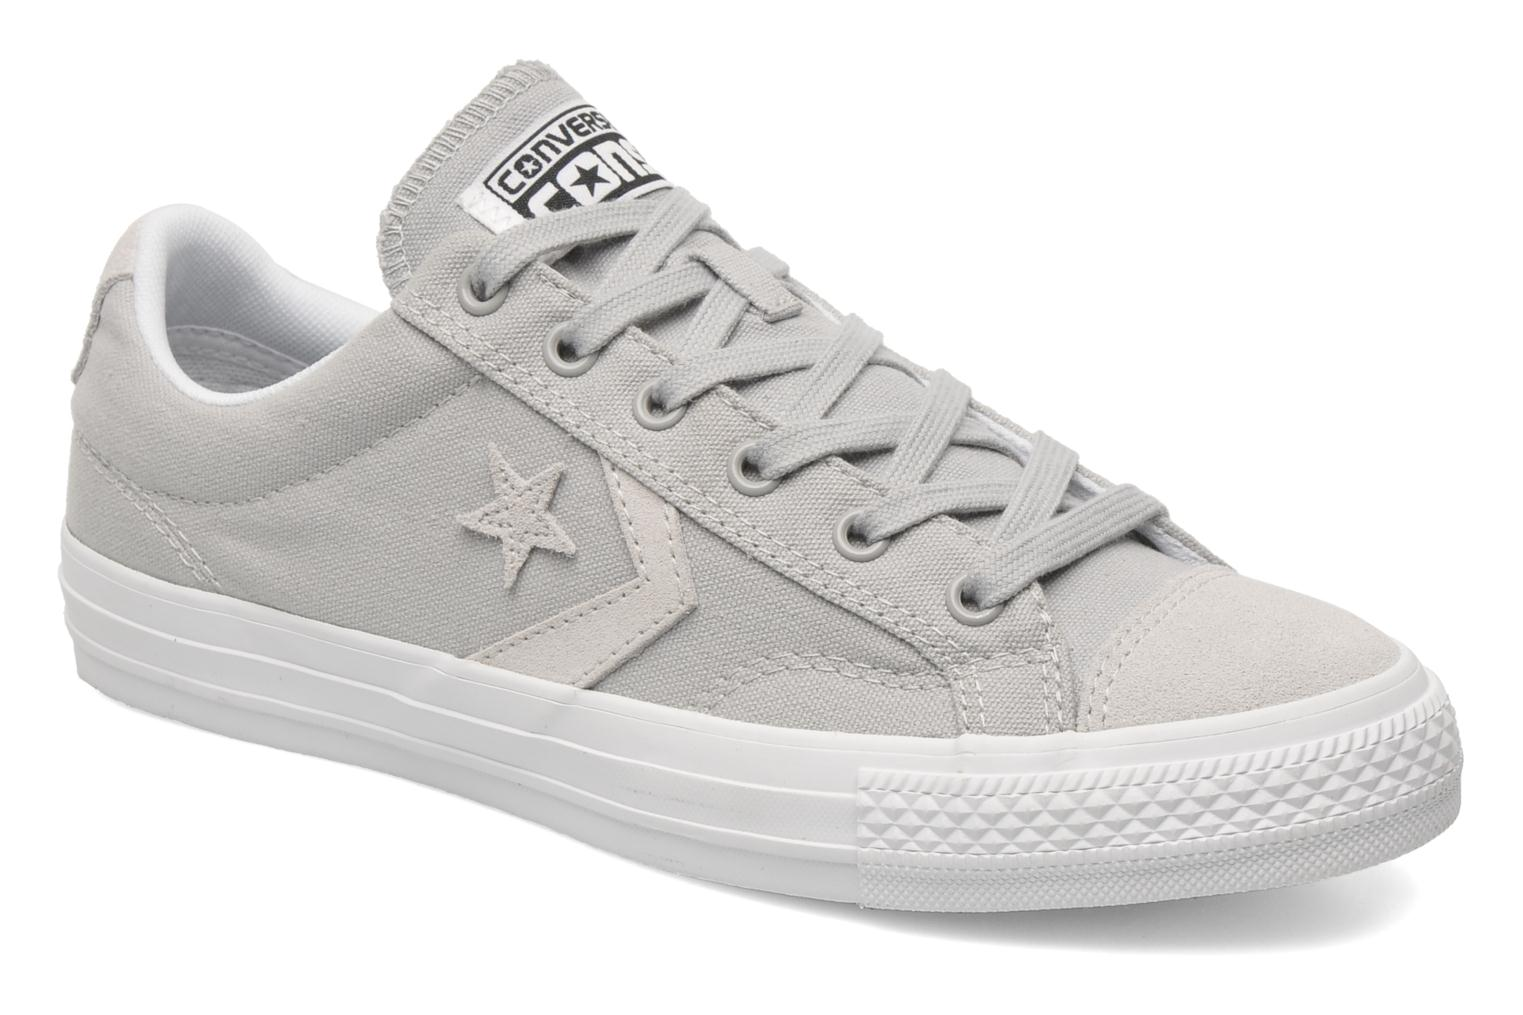 converse star player tonal ox m trainers in grey at 180604. Black Bedroom Furniture Sets. Home Design Ideas